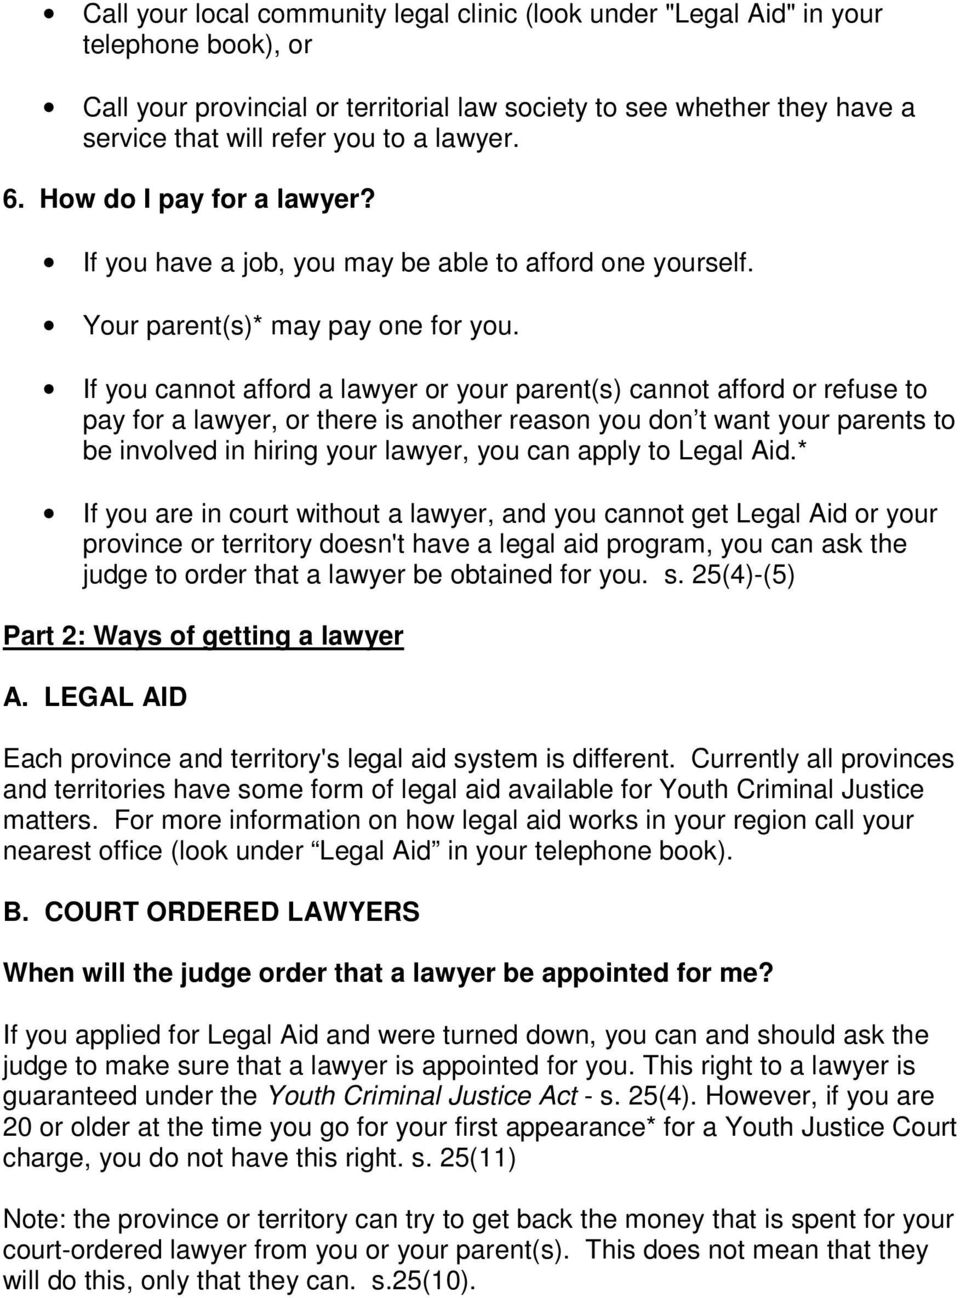 If you cannot afford a lawyer or your parent(s) cannot afford or refuse to pay for a lawyer, or there is another reason you don t want your parents to be involved in hiring your lawyer, you can apply